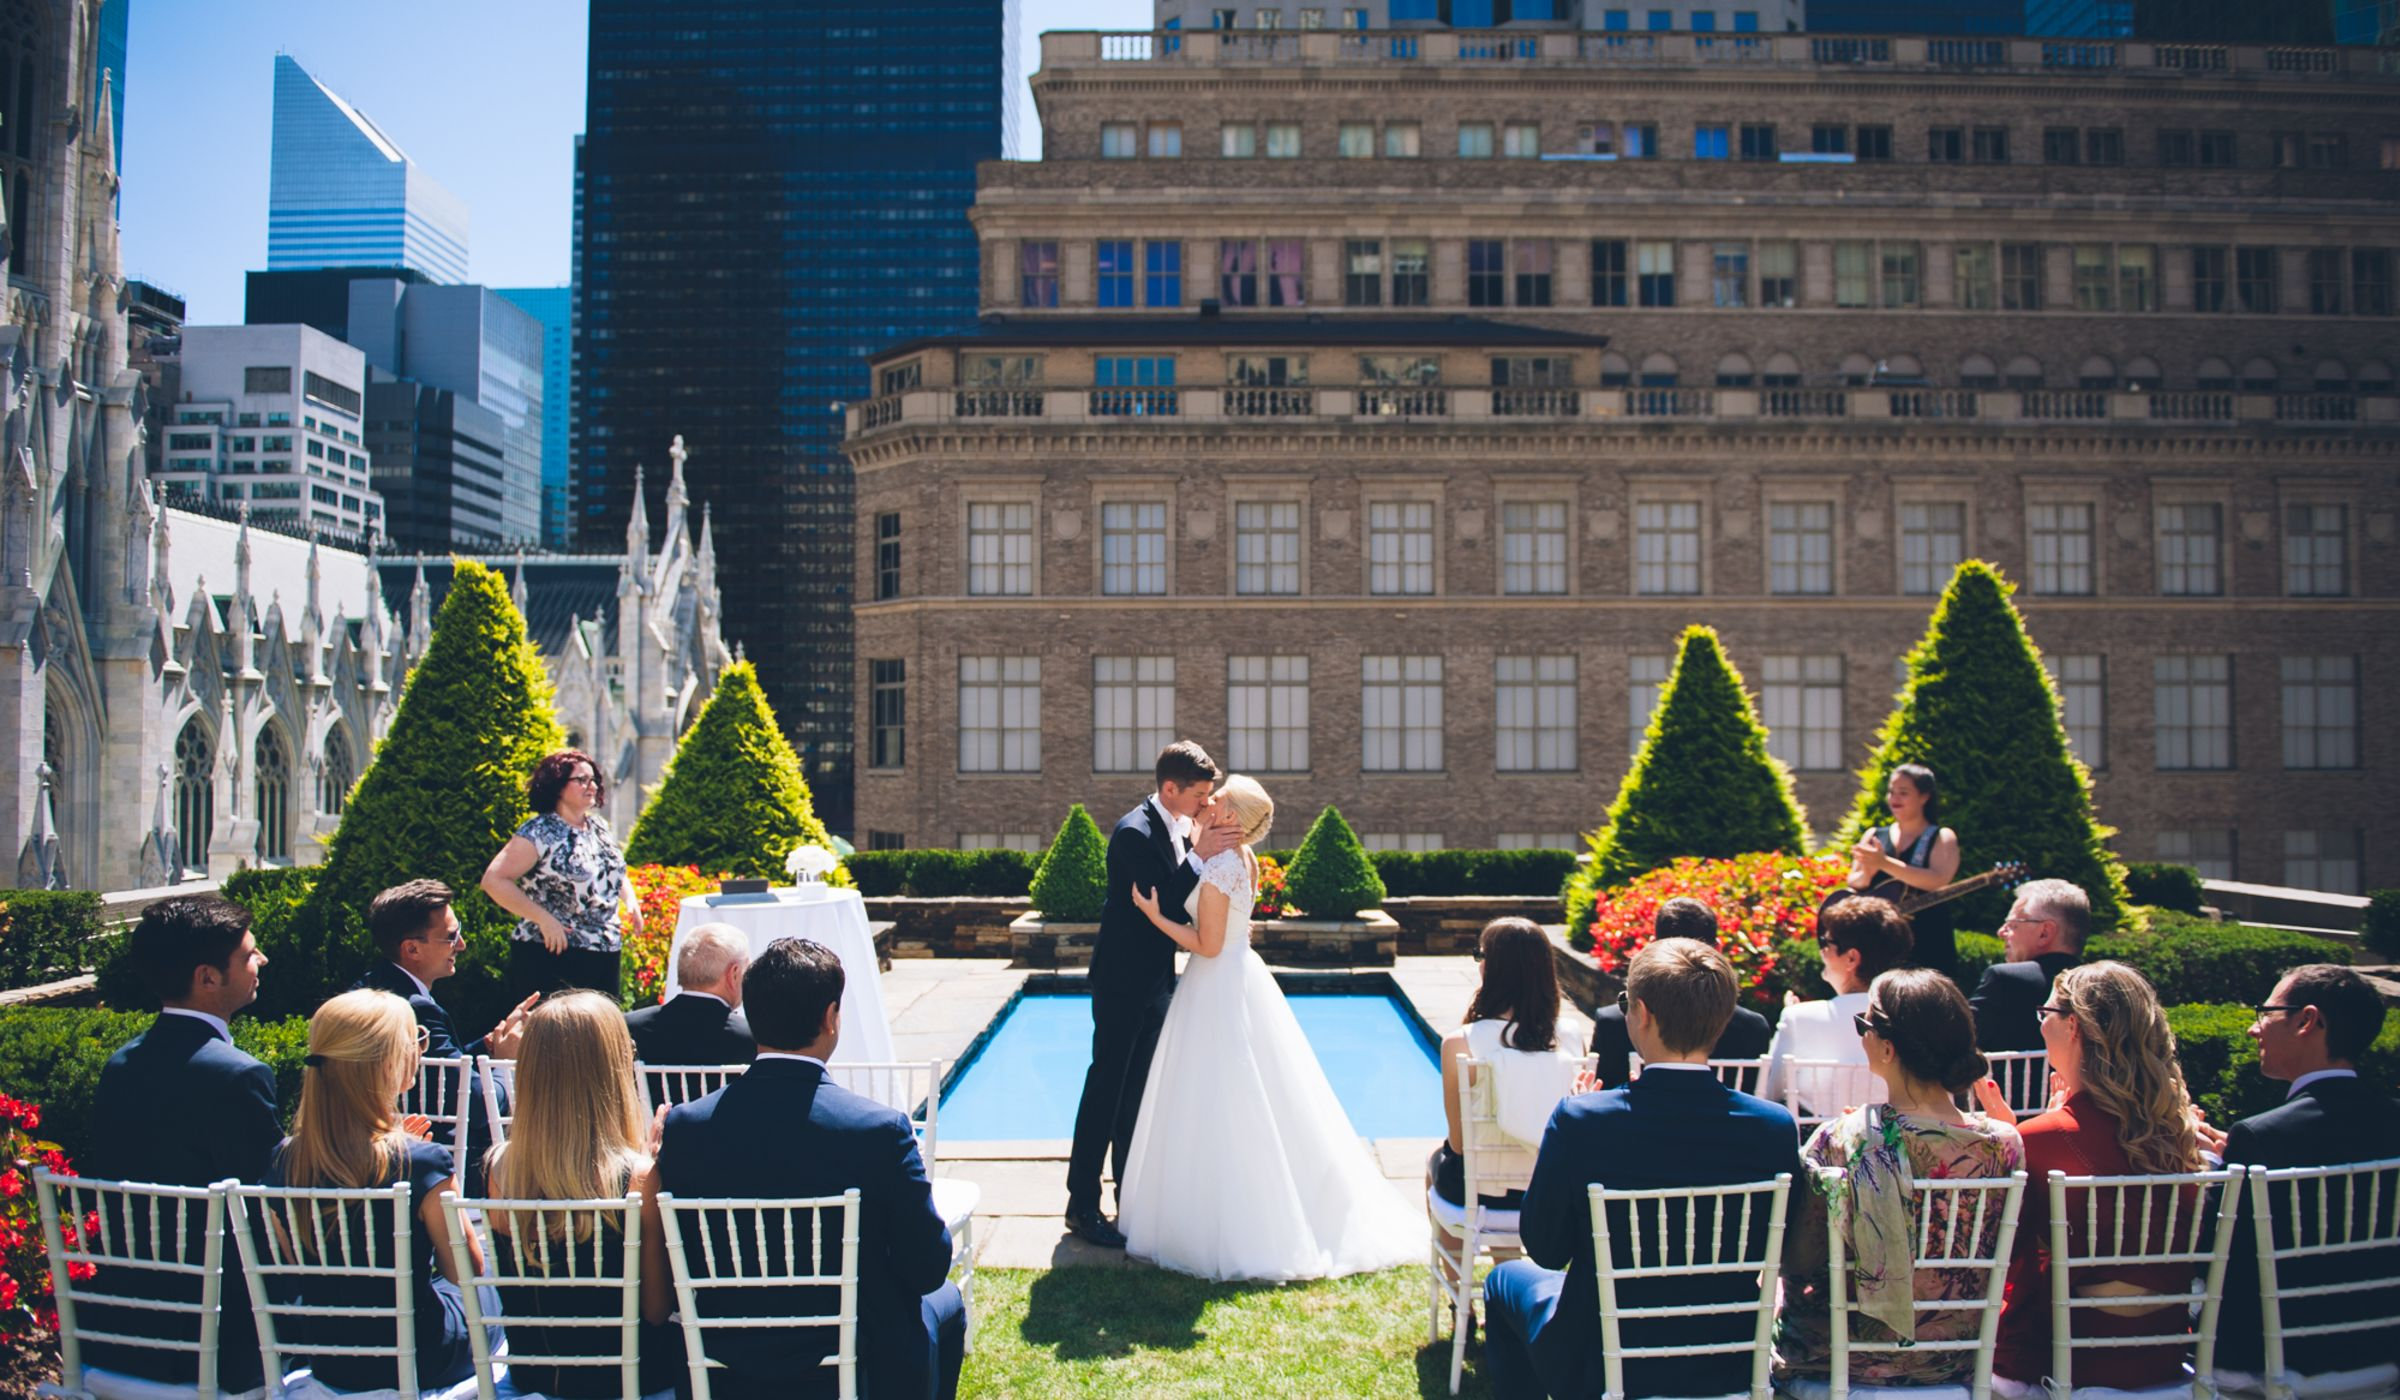 10 outdoor wedding venues in new york city weddingwire for Outdoor wedding venues in ny